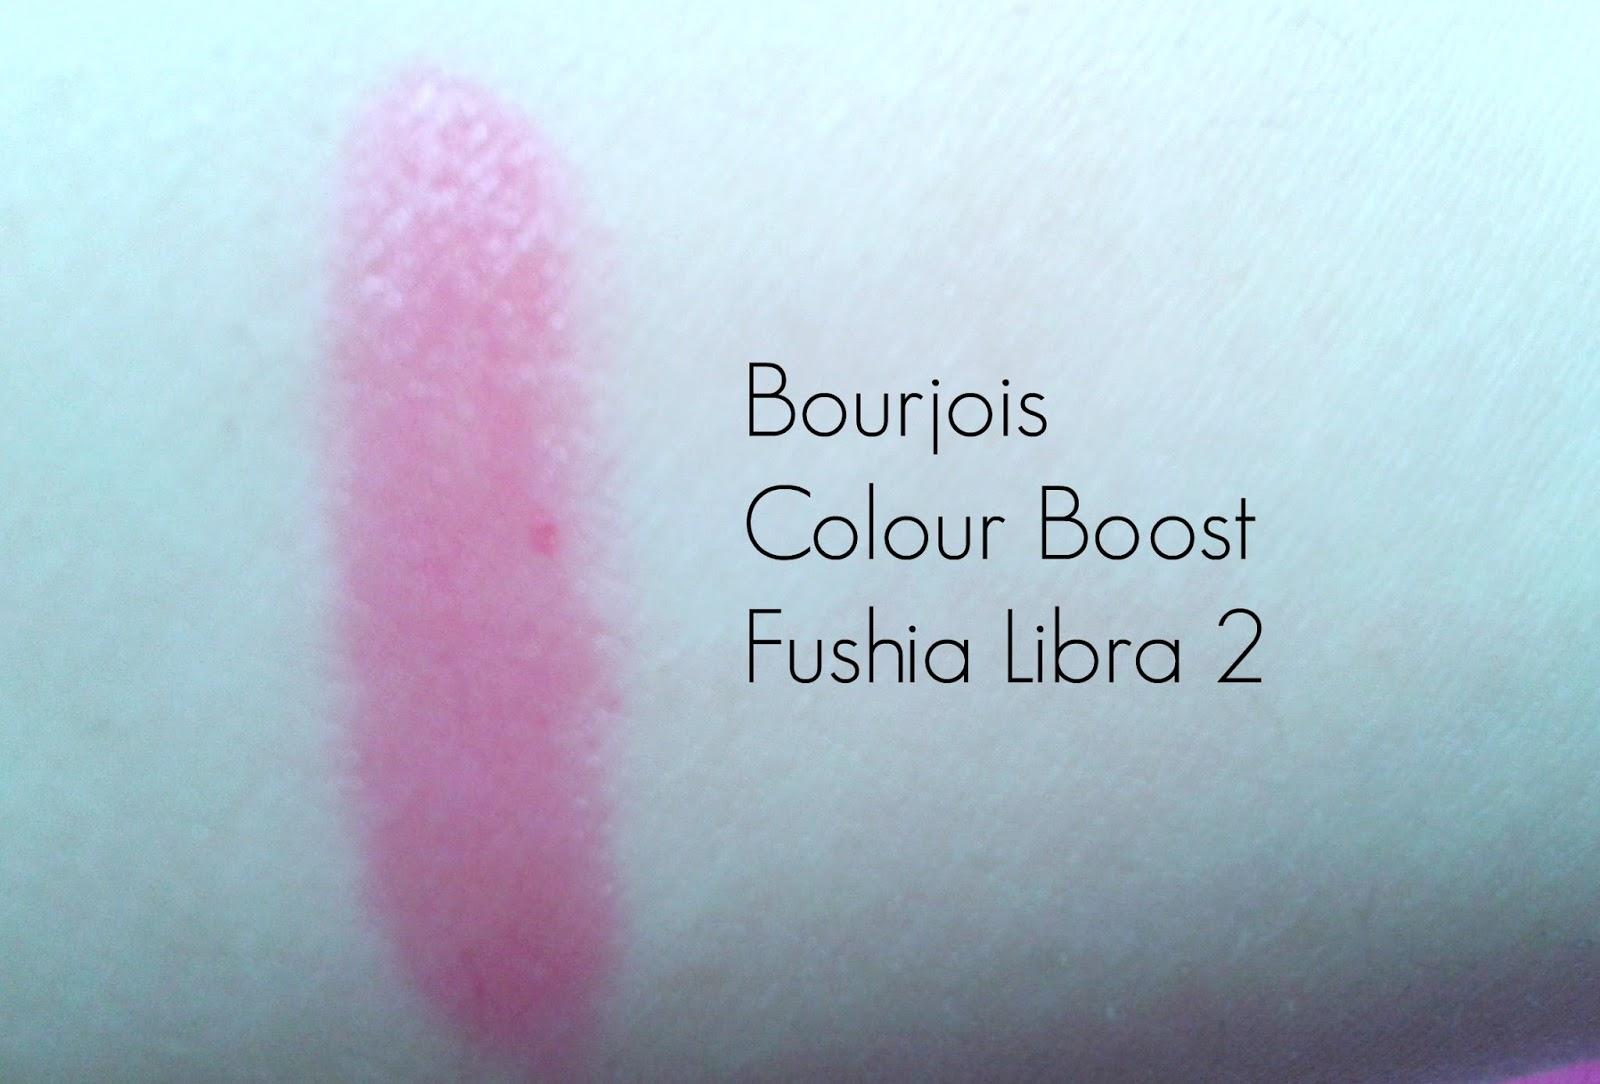 swatch of Bourjois Colour Boost lip crayon in fuschia libra